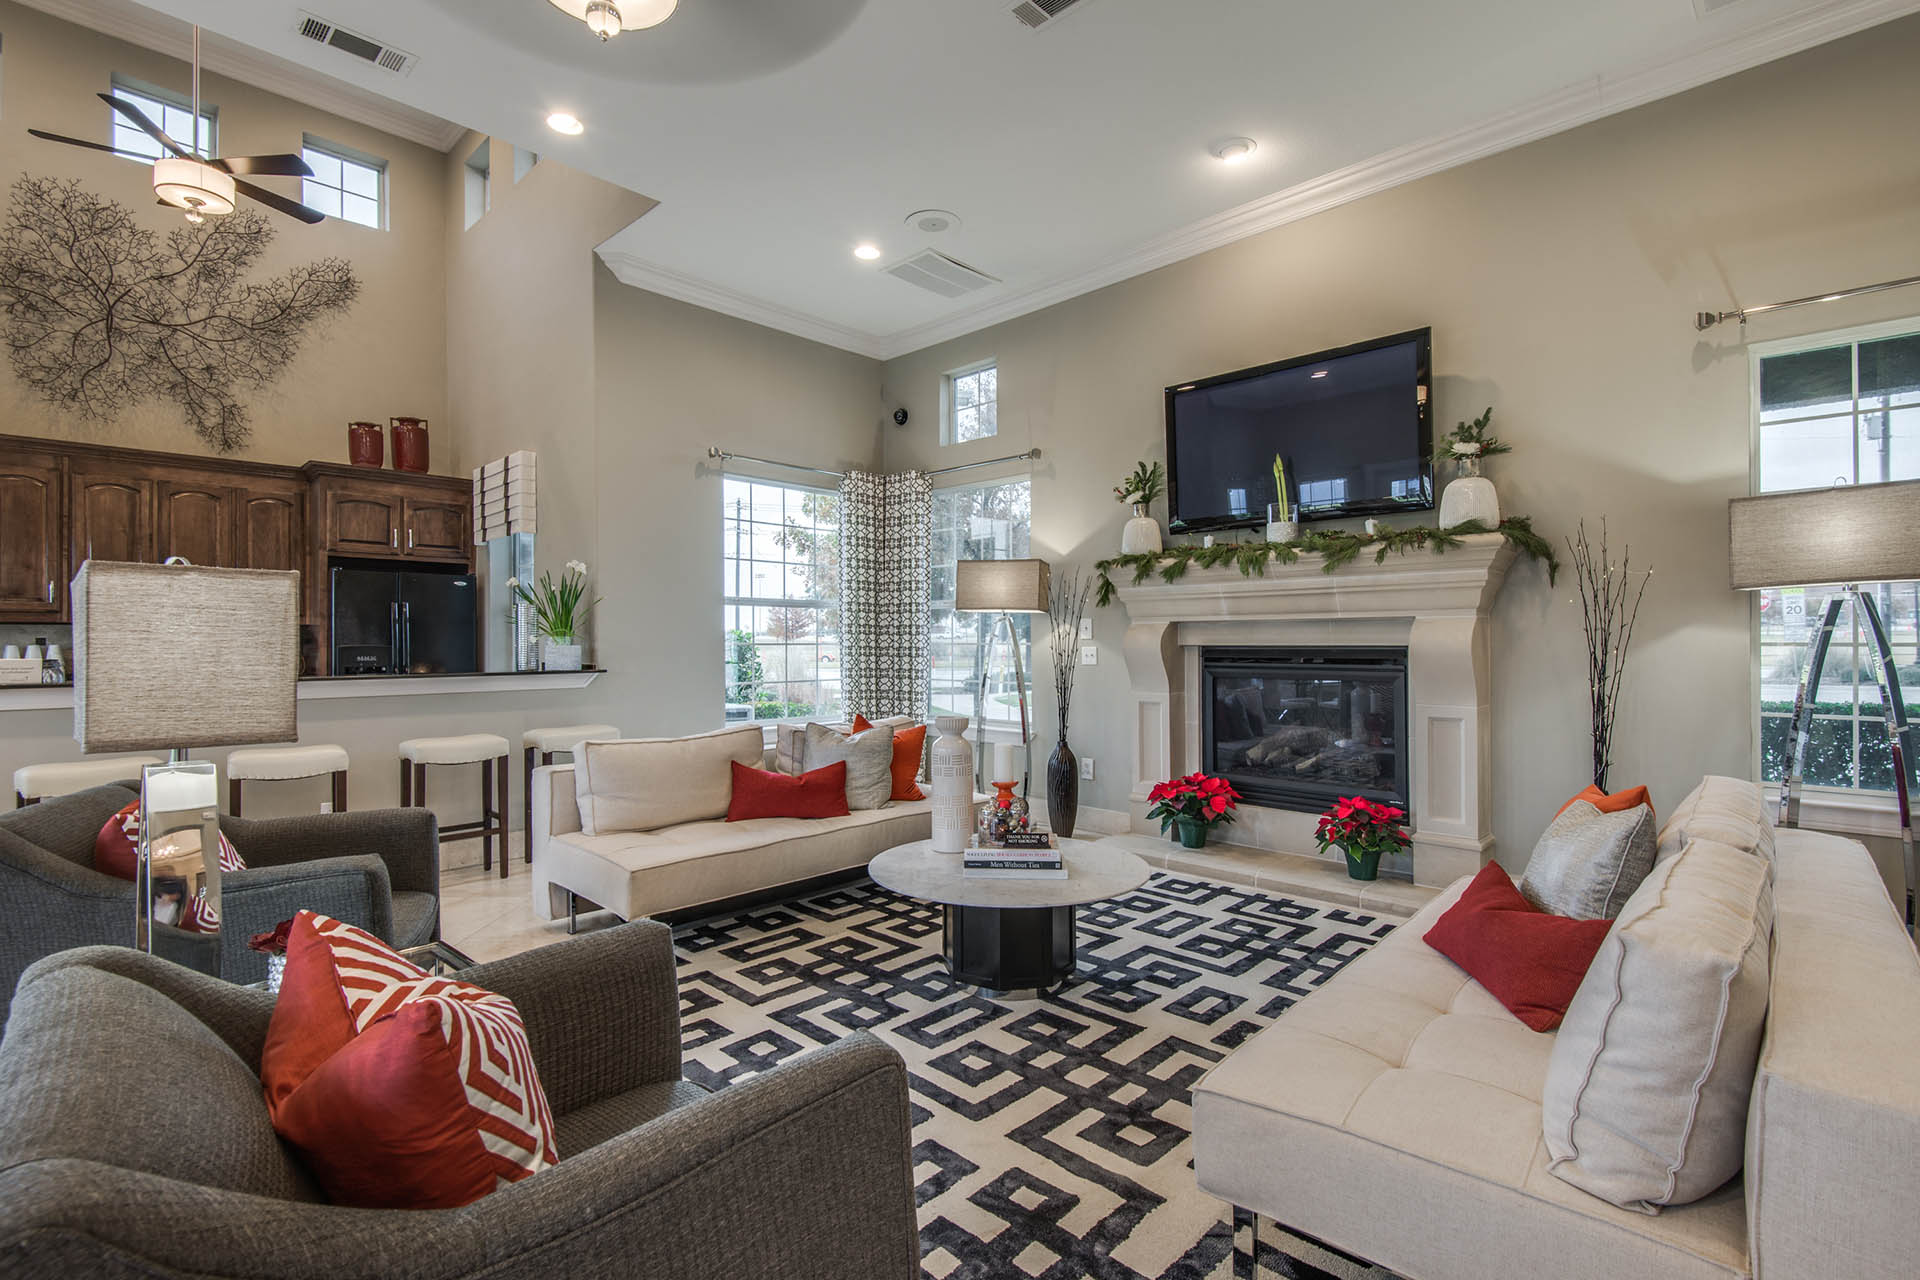 Fireplace Available at Orion Prosper, Texas